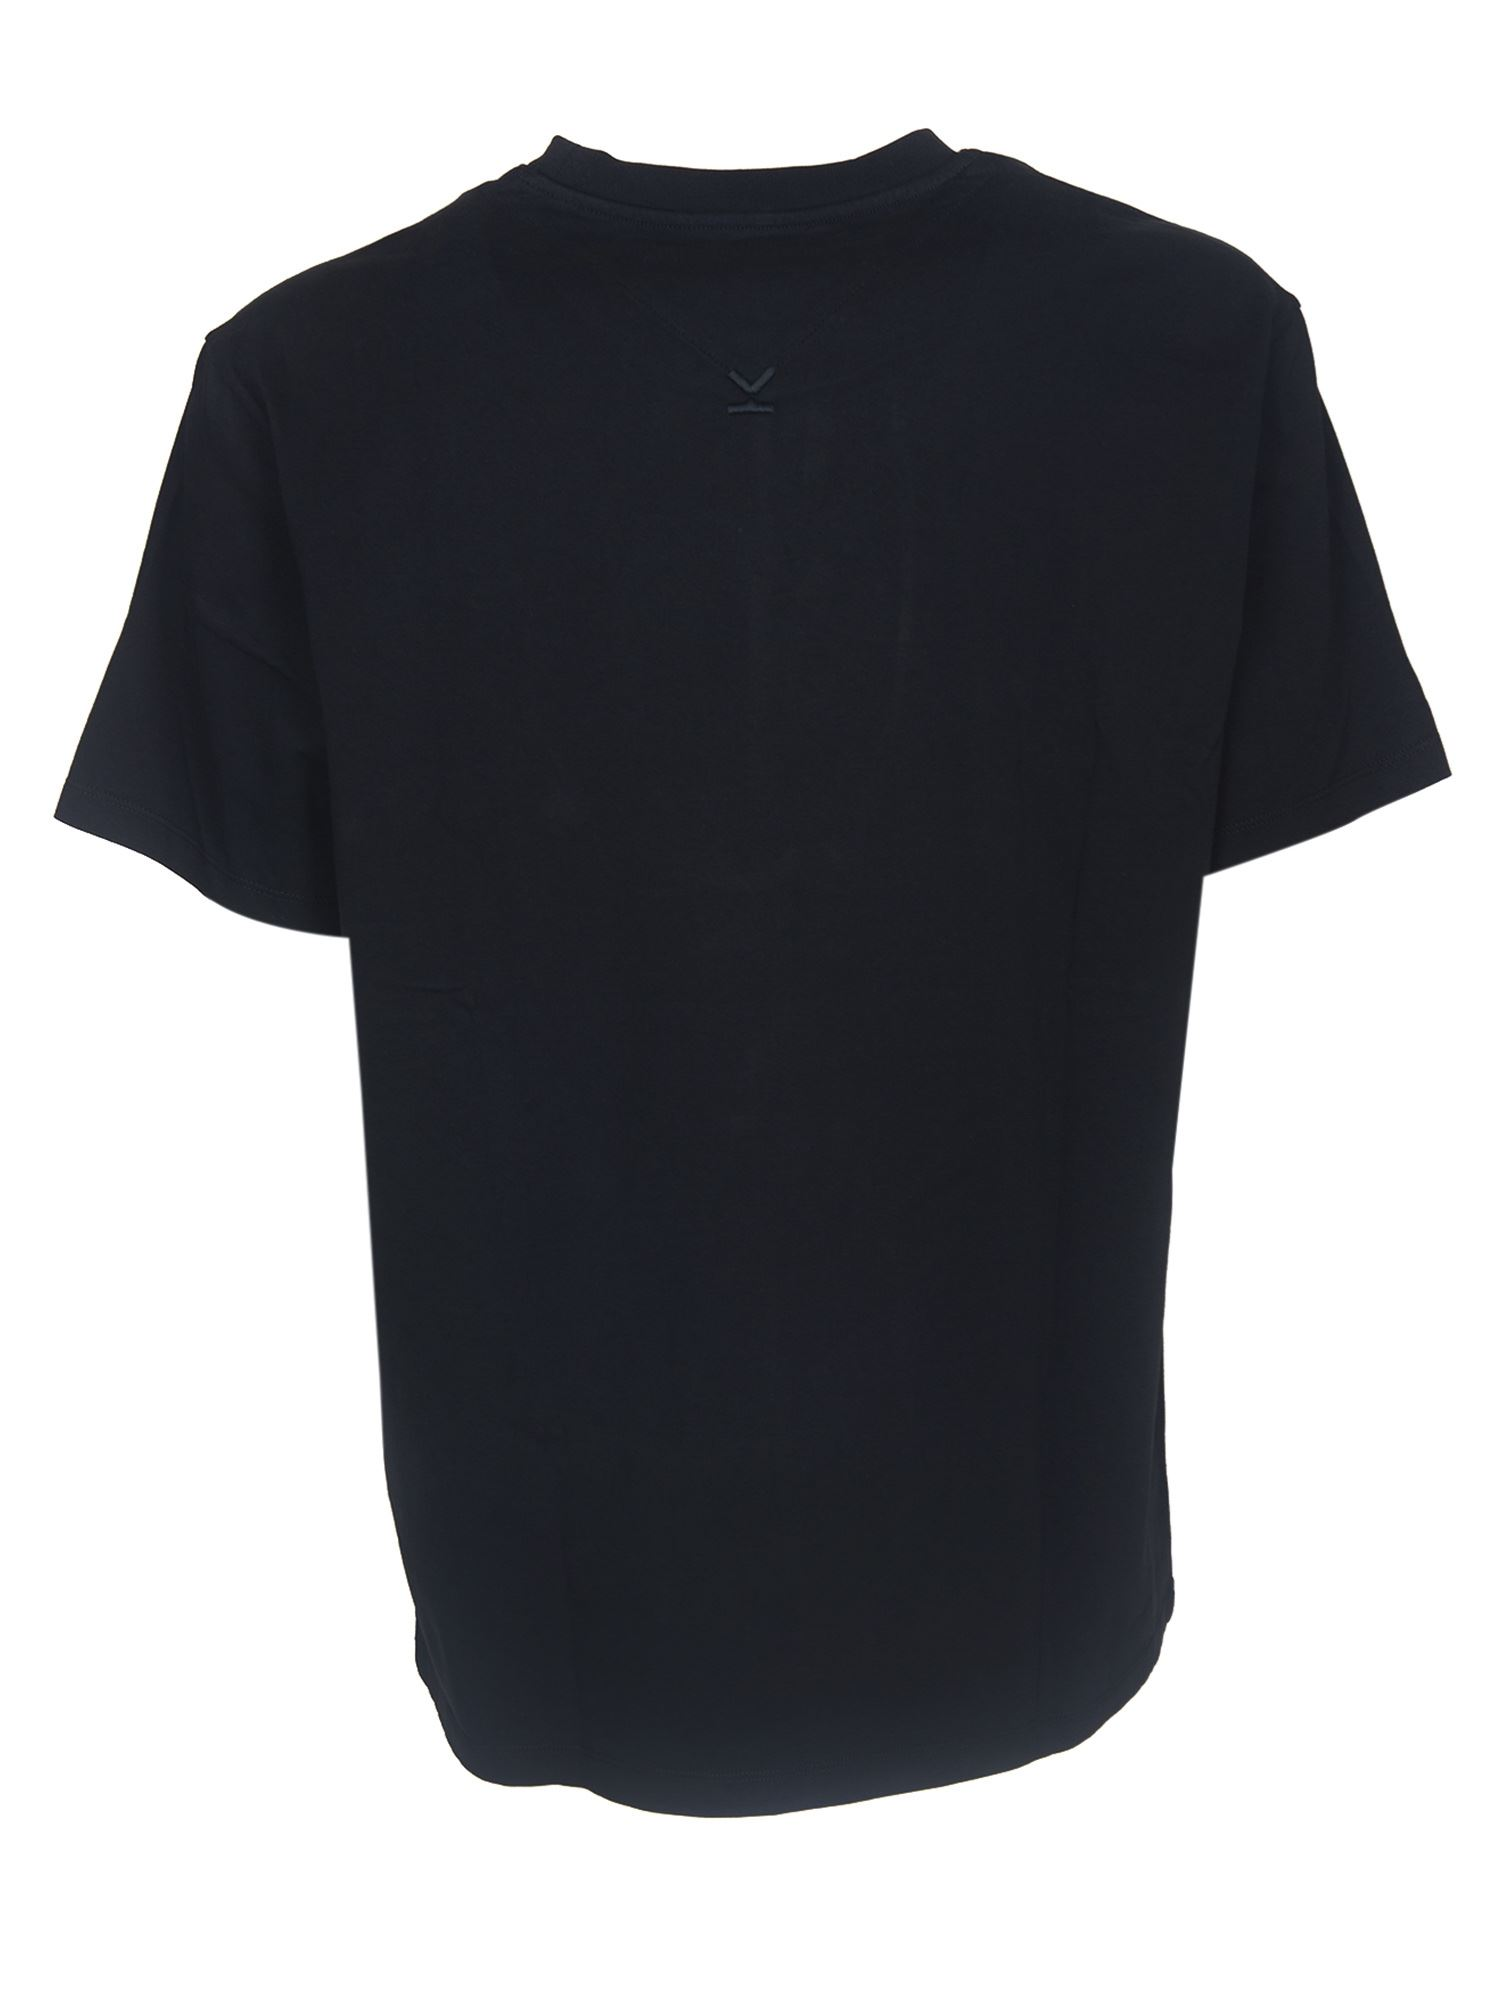 KENZO Cottons TIGER CREST T-SHIRT IN BLACK